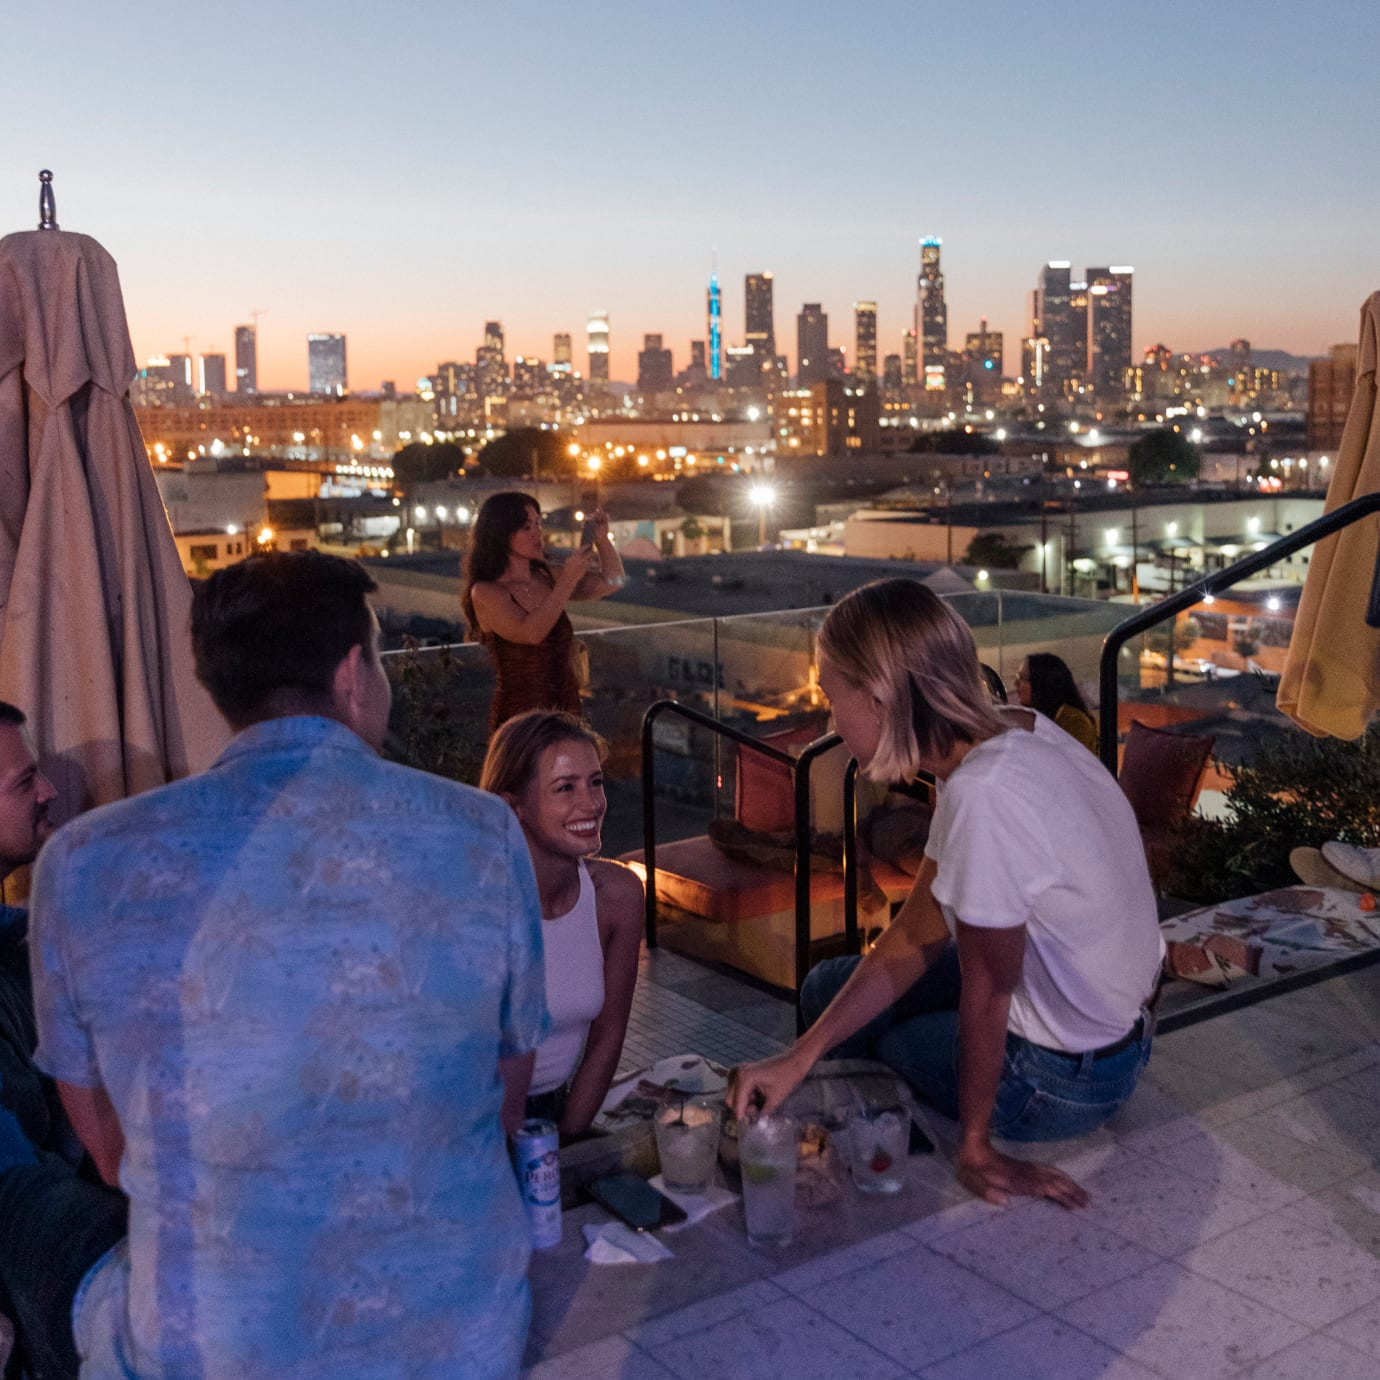 A group of men and women drinking and chatting on a rooftop.